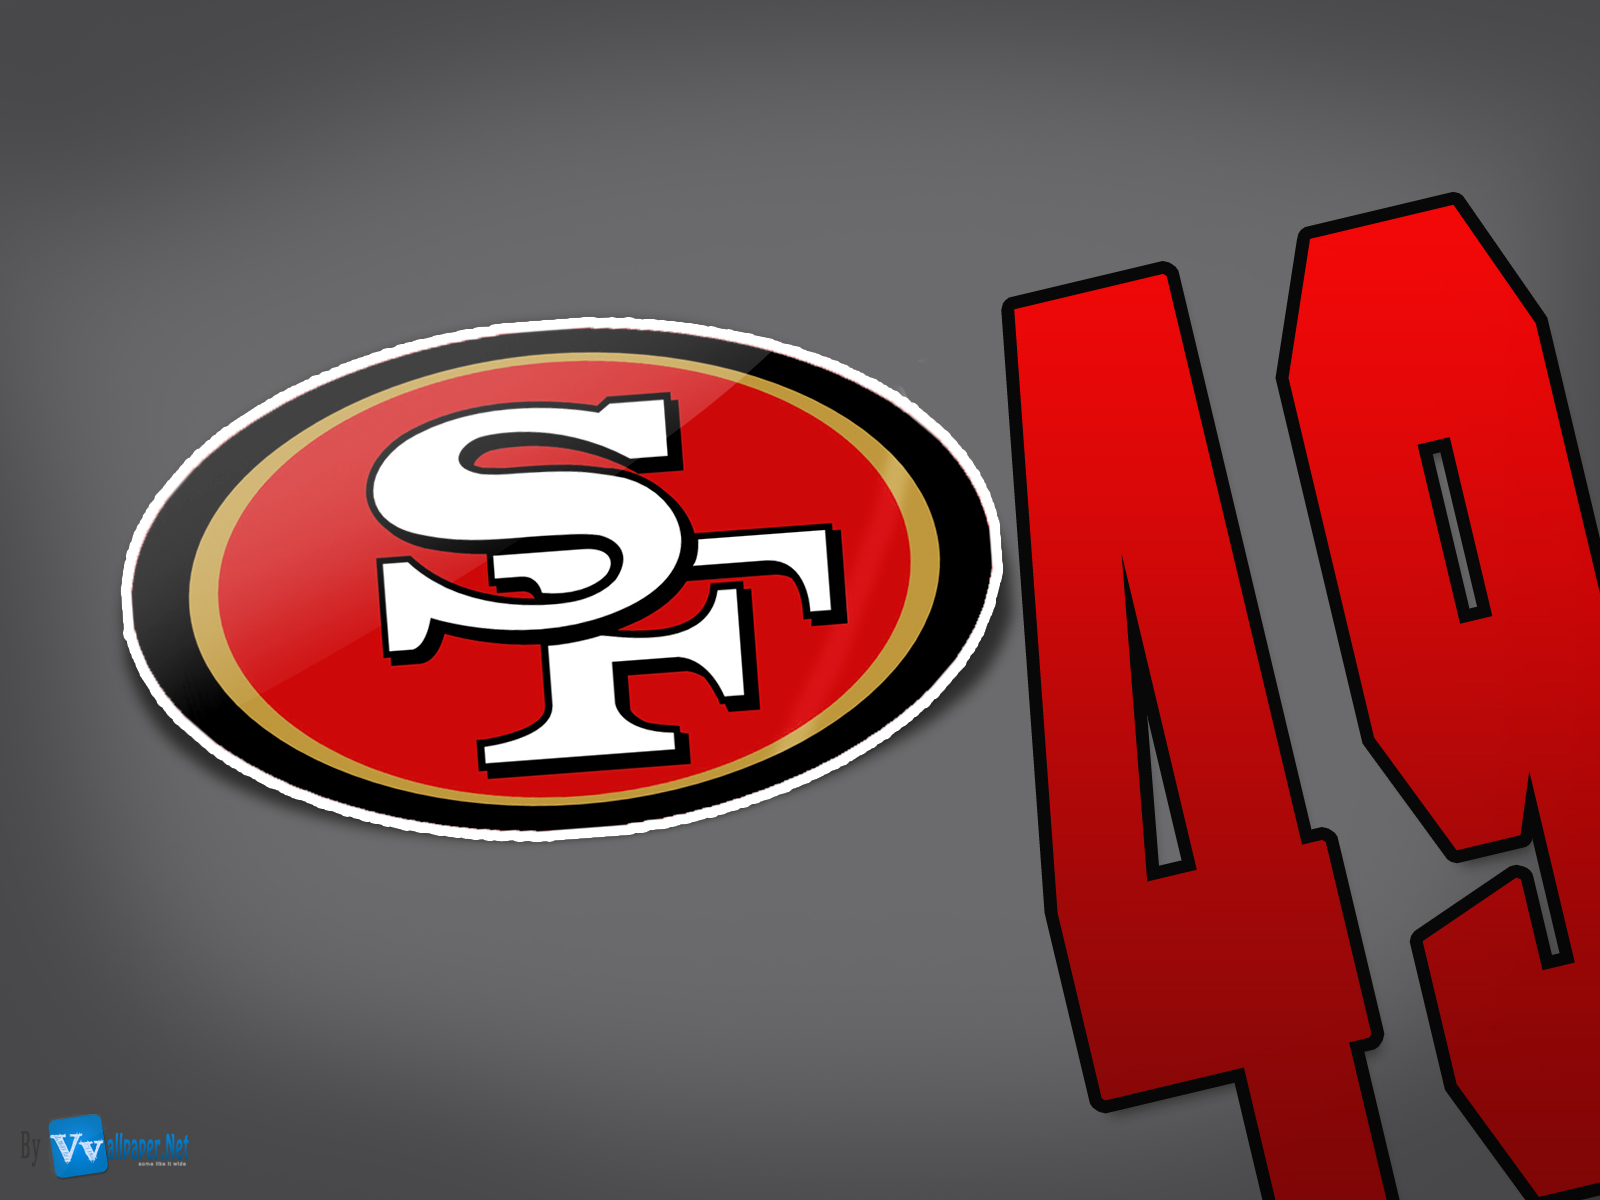 http://4.bp.blogspot.com/-Sht4BuDGXEY/UIGZcHs_4OI/AAAAAAAAFjM/6mUM2XdSJ8o/s1600/Sf-49ers-Nfl-Simple-HD-Wallpaper_by_Vvallpaper.Net.jpg